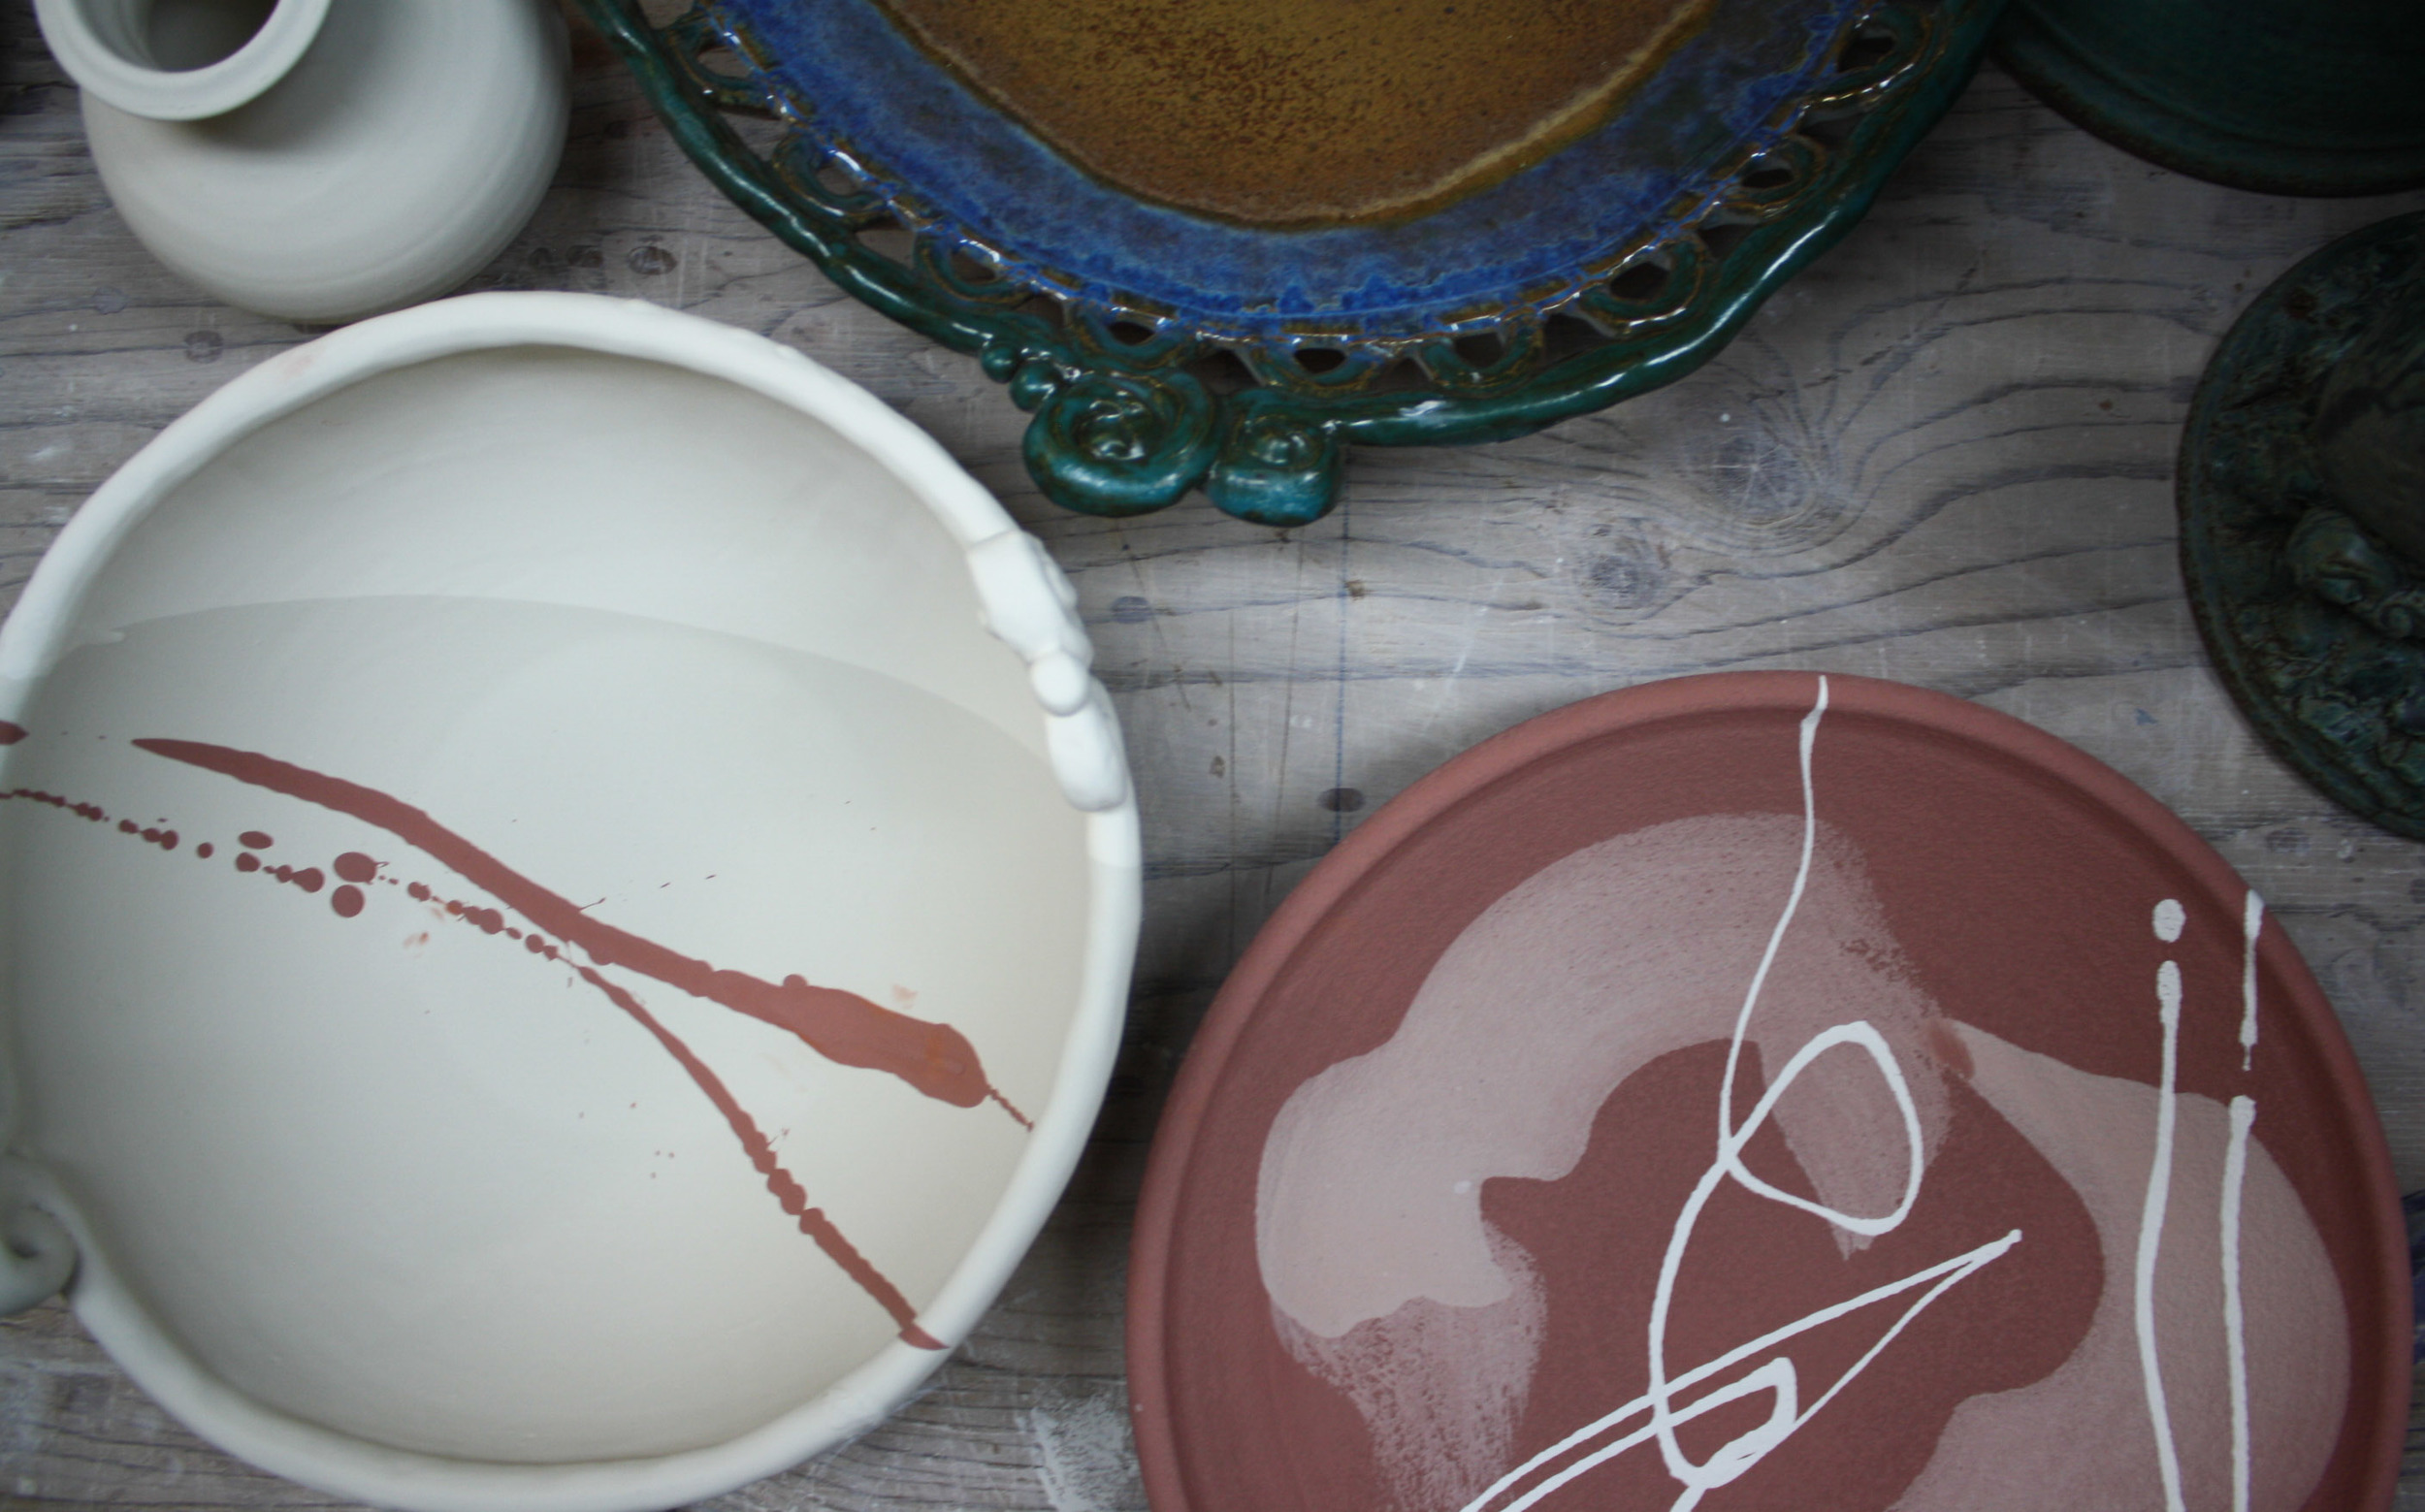 My mother's bowl (white; left) next to her teacher's (Kevin Nolan's) (red; right)